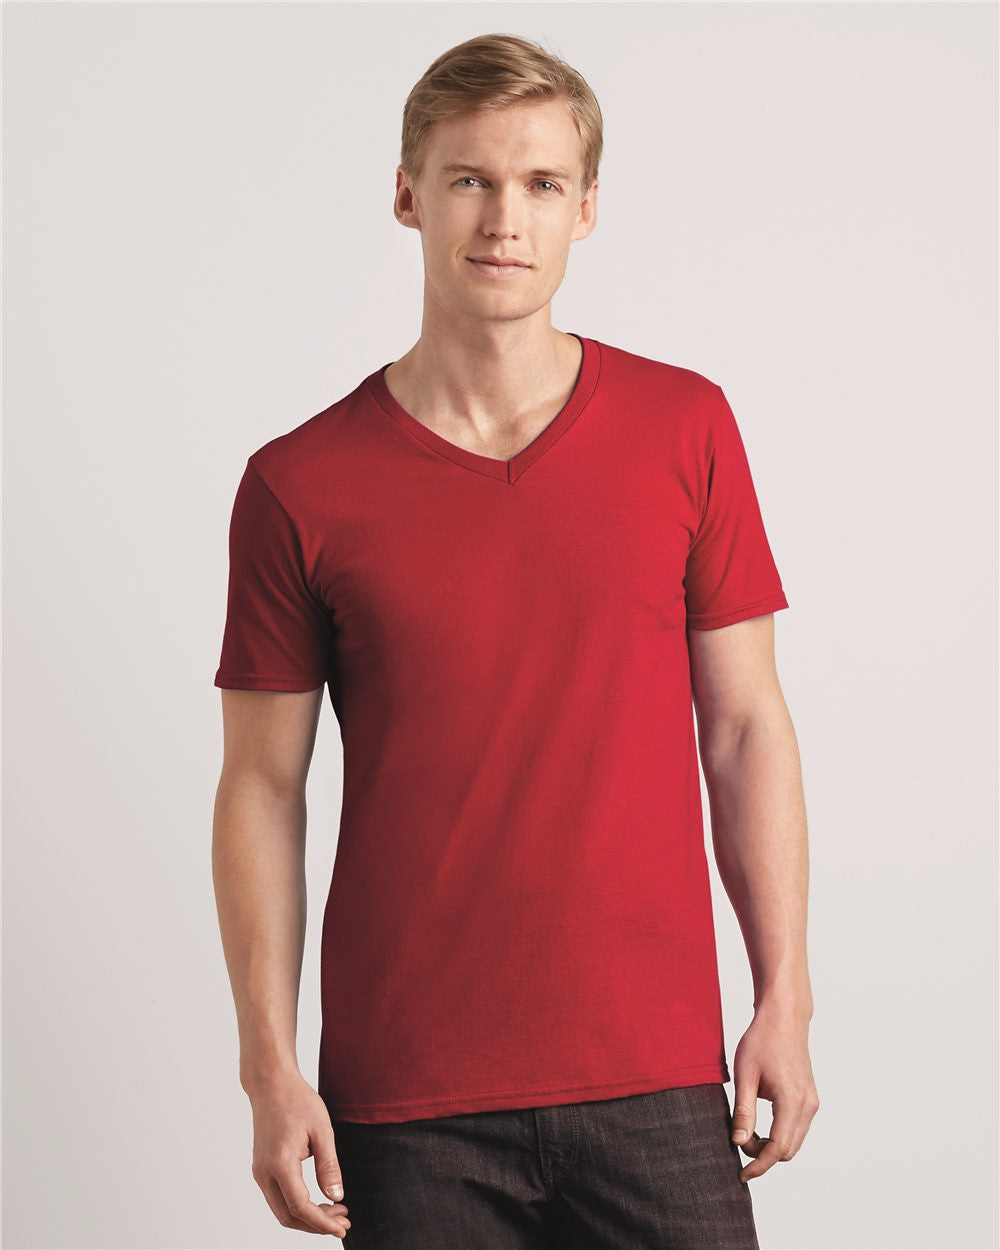 V Neck T-shirts by Fruit of the Loom - Discountedrack.com